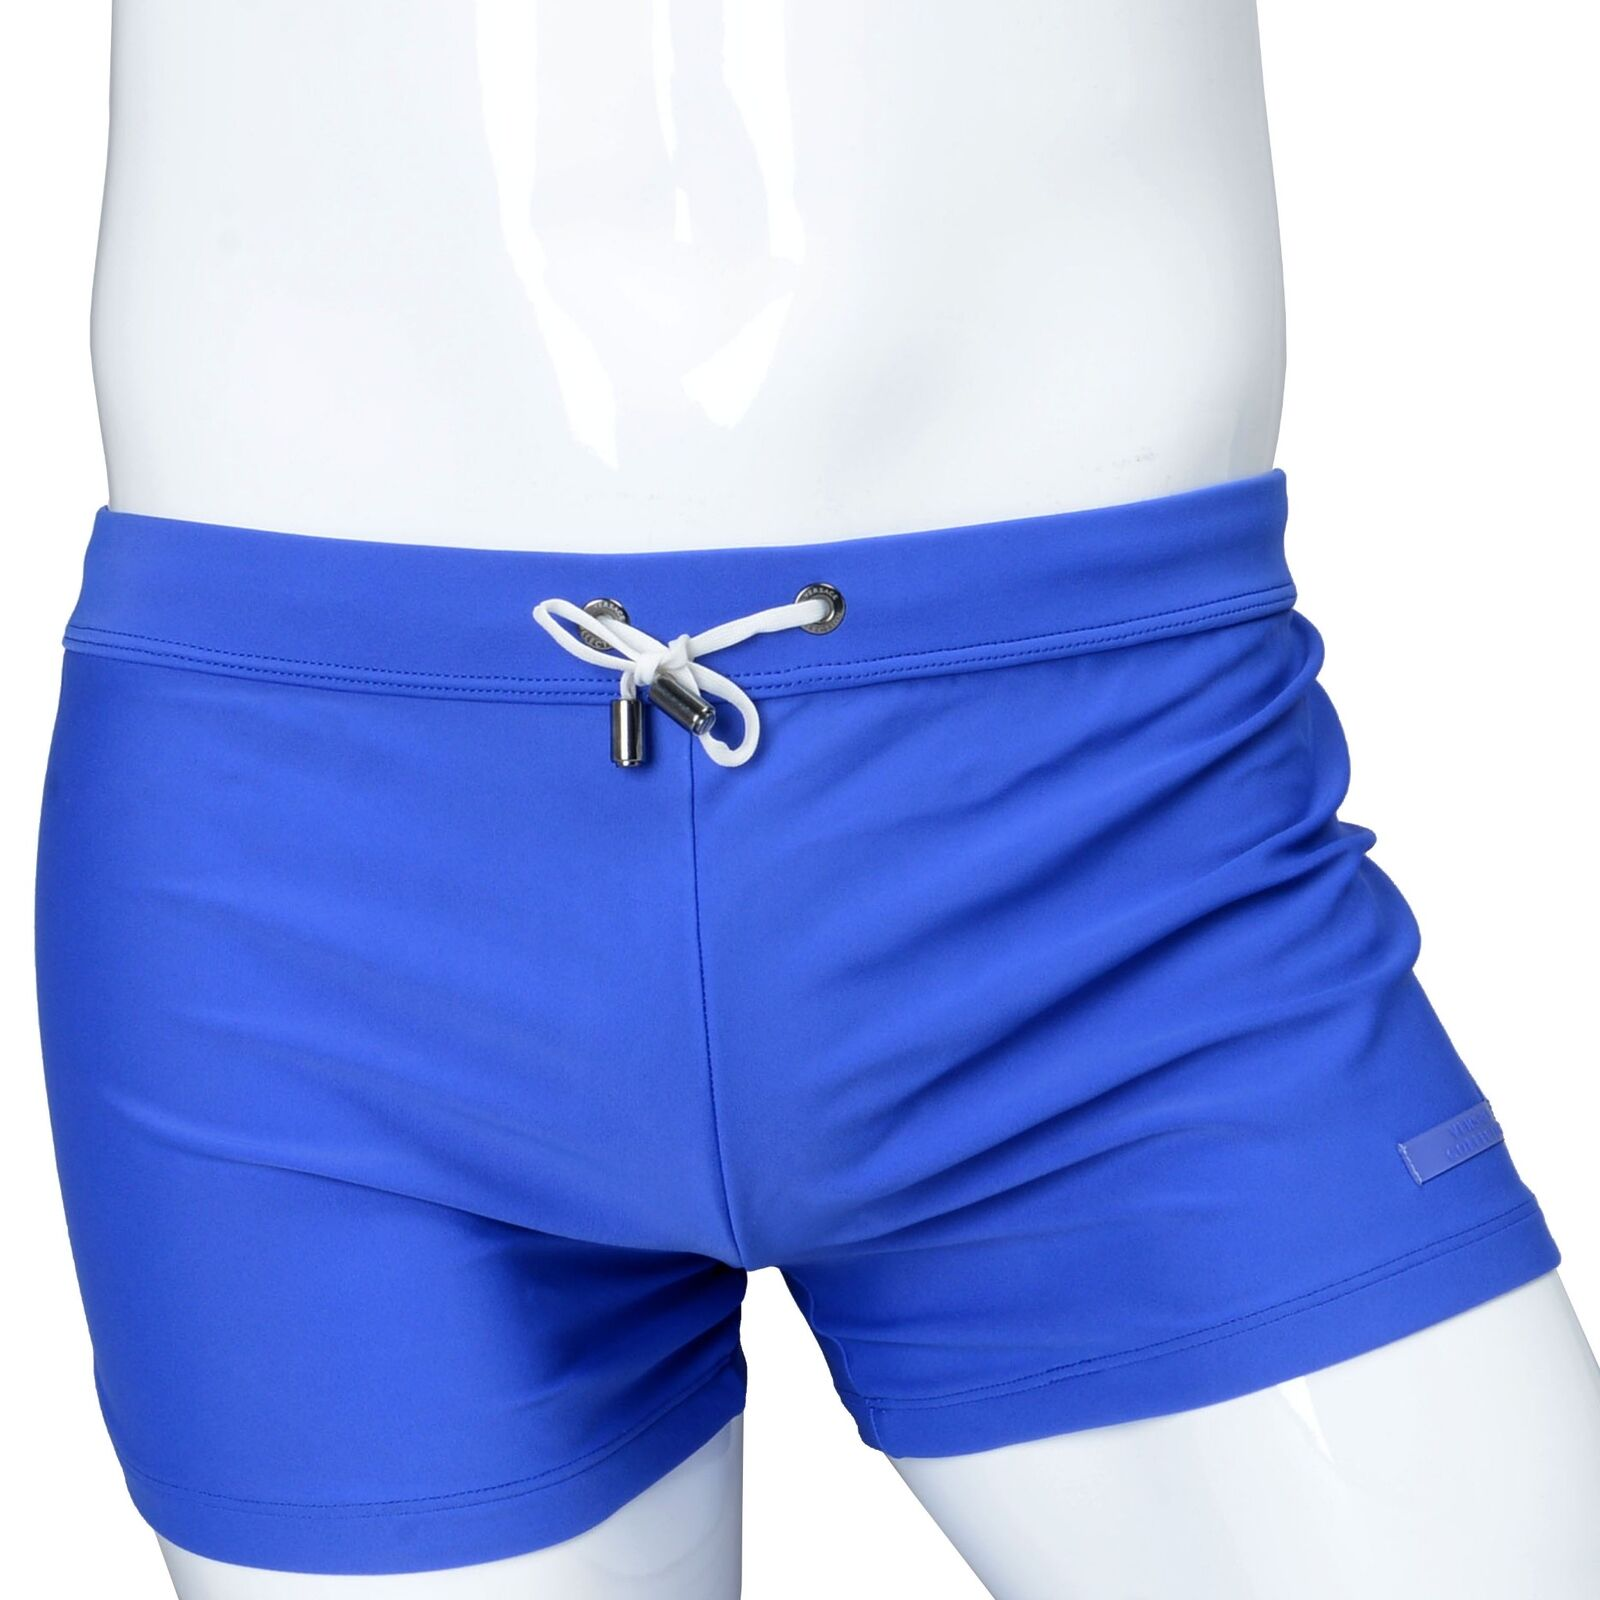 a8fc71a256 Details about Versace Collection Blue Drawstring Men's Swimming Shorts